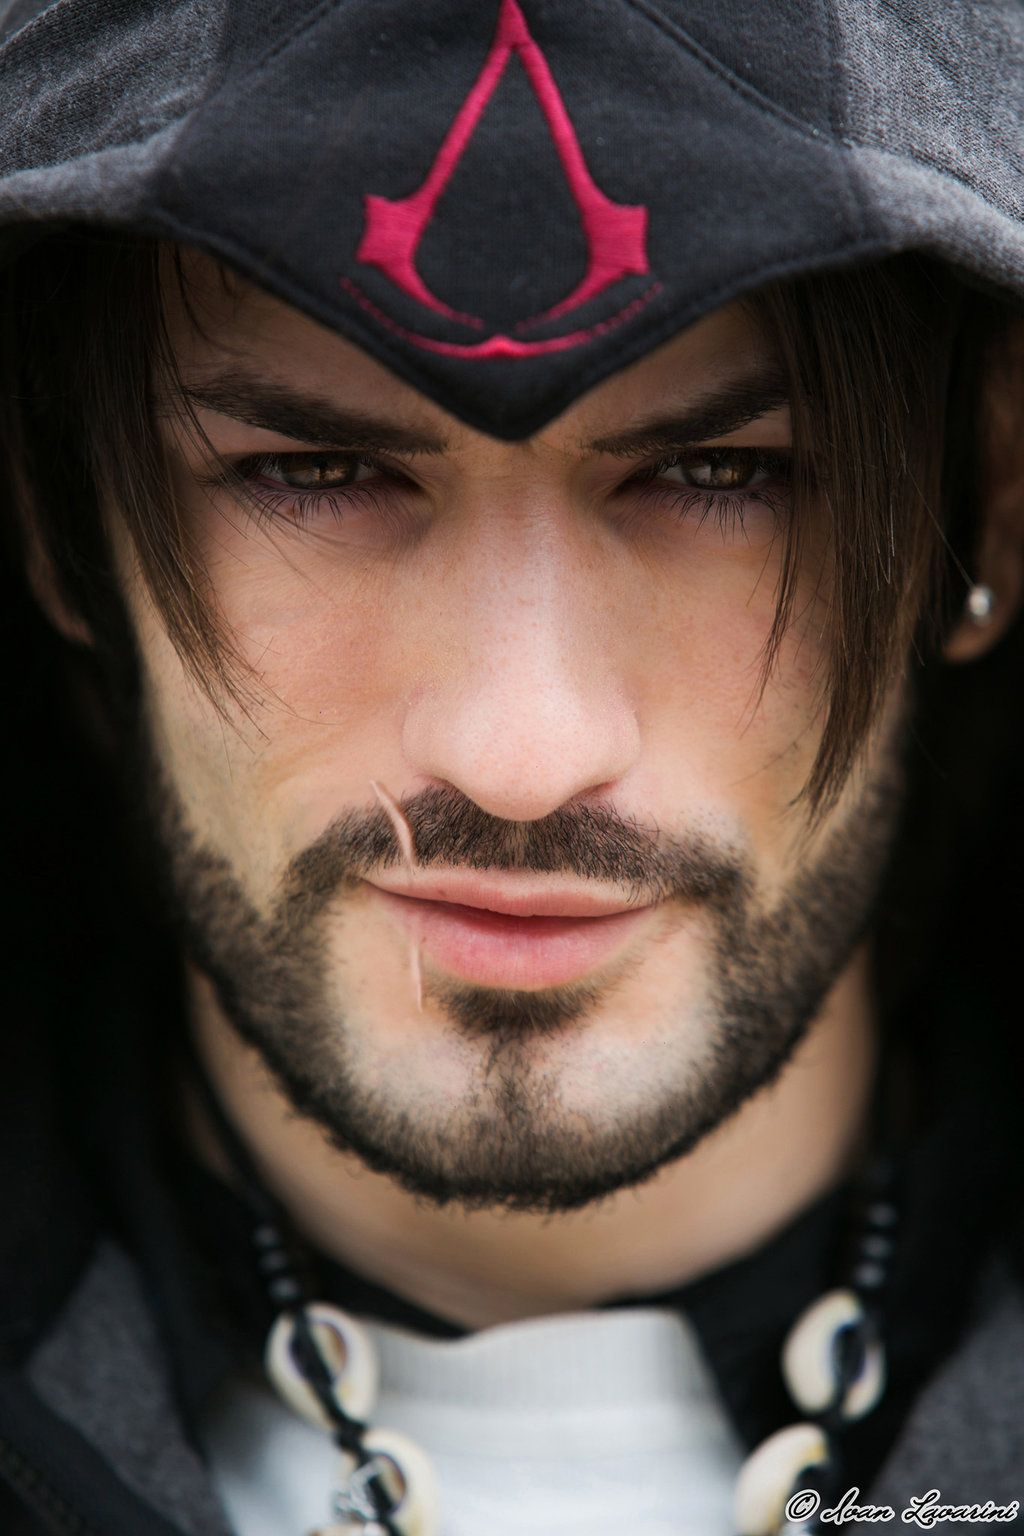 Leon Chiro As Ezio Auditore Coming On 14 Feb 2015 By